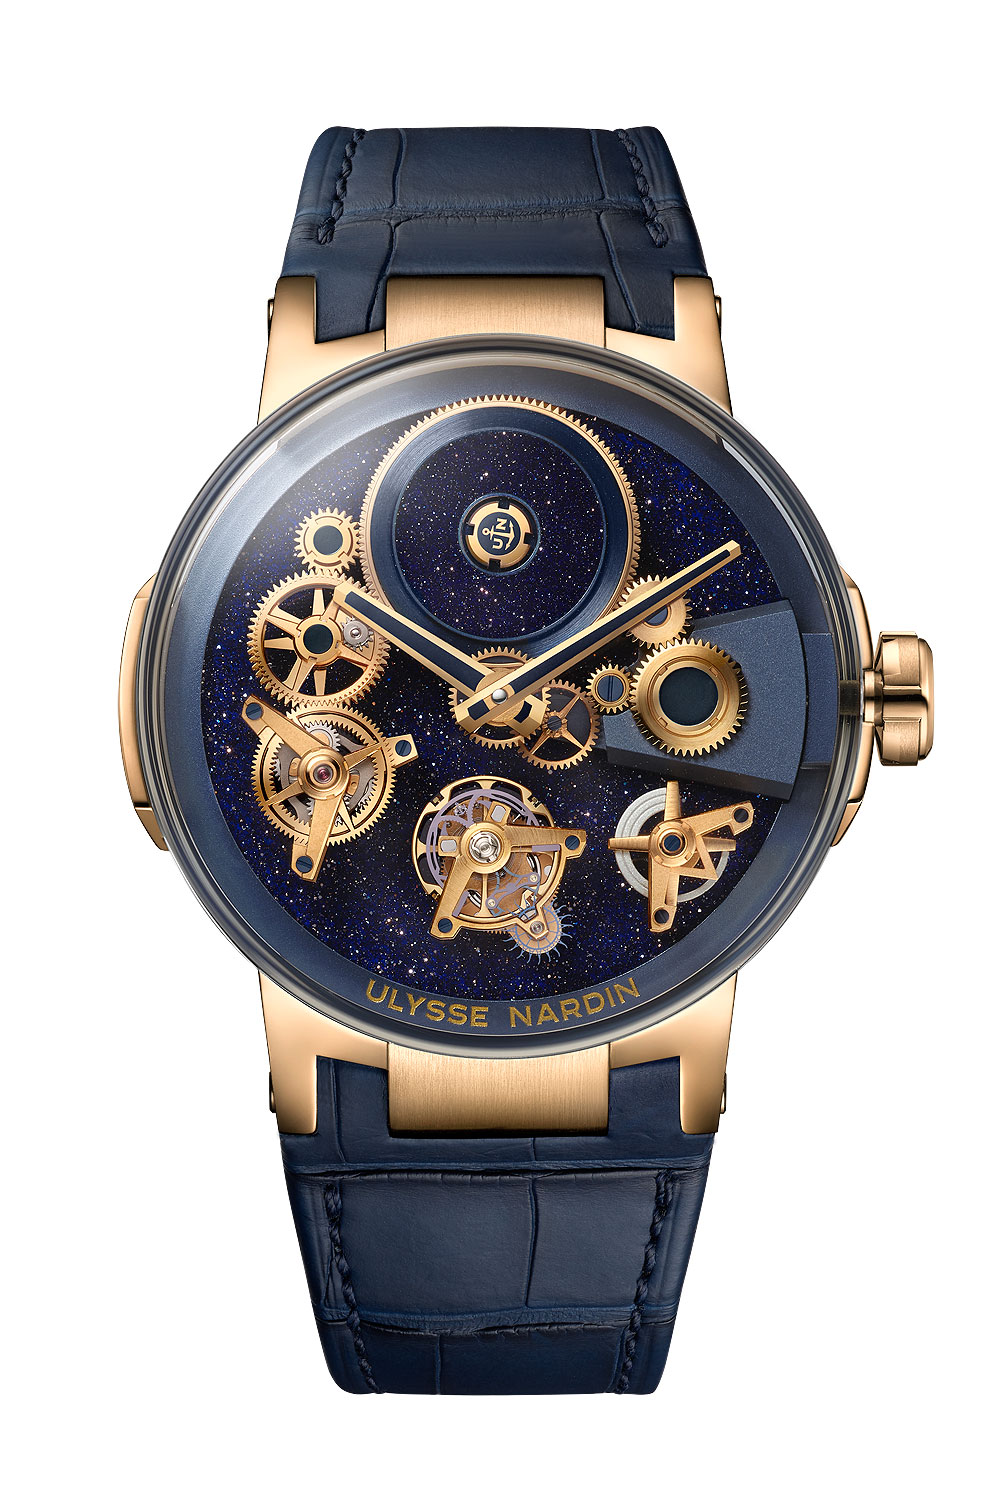 Four Wheels: Ulysse Nardin Unveils New Executive Free Wheel Limited Editions | WatchTime - USA's No.1 Watch Magazine